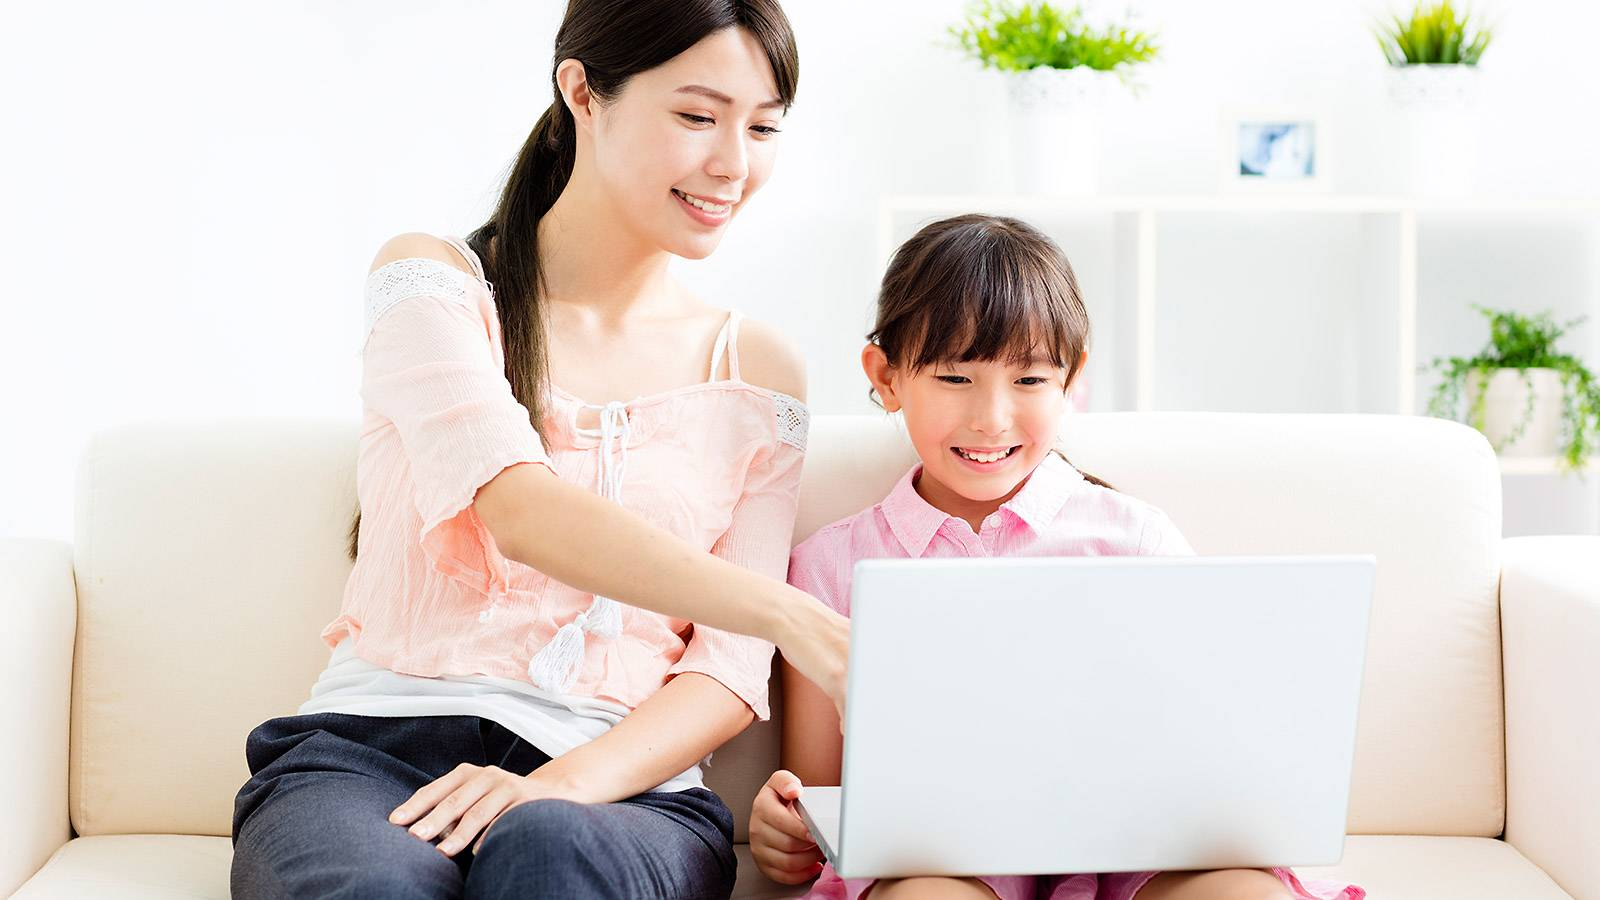 Kids-How-to-protect-your-child-from-online-grooming-and-sexual-abuse-2